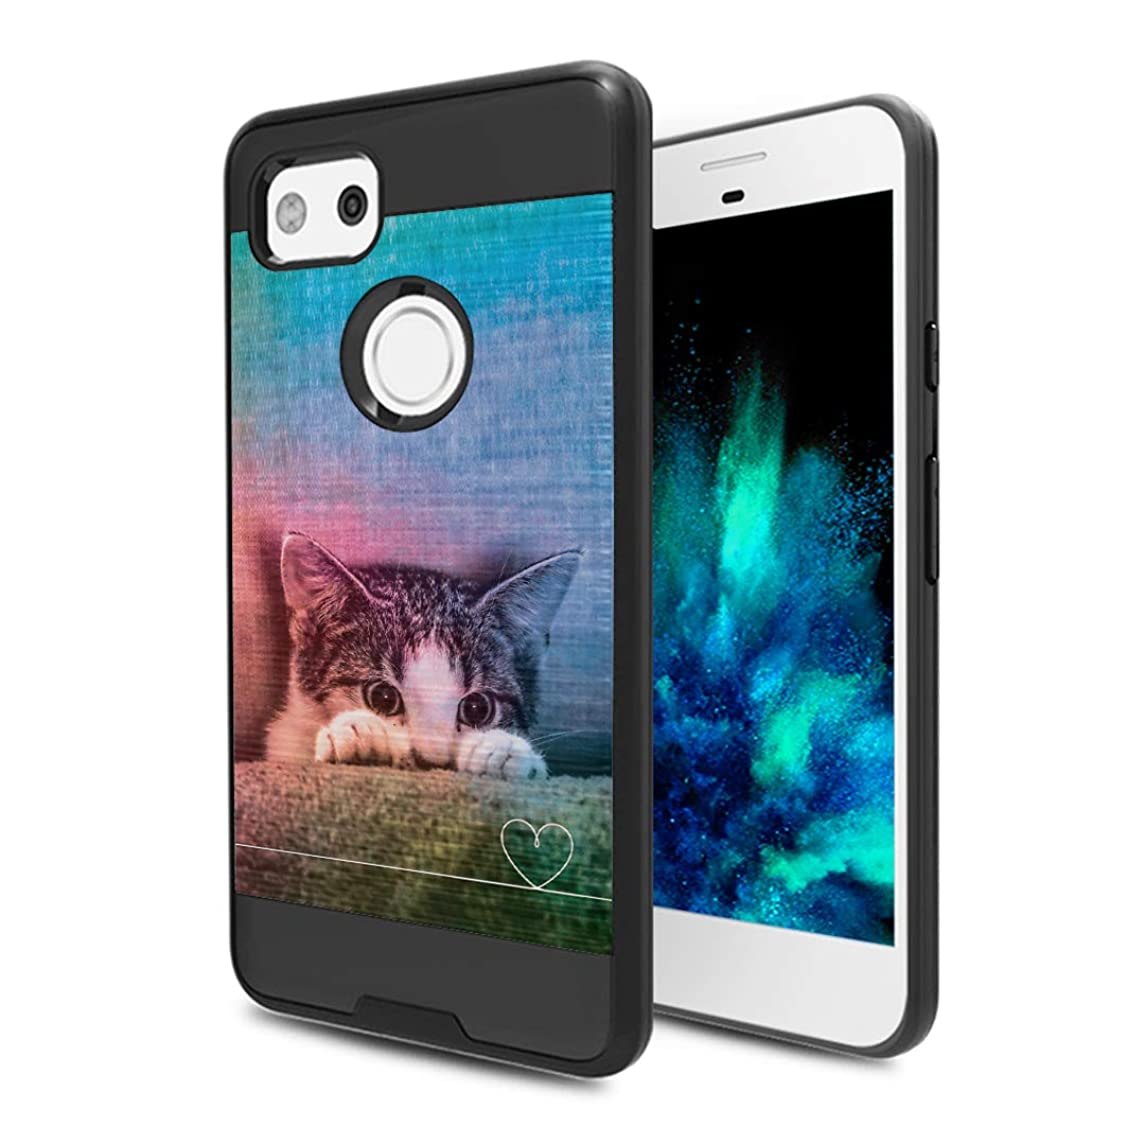 Capsule Case Compatible with Google Pixel 2 XL (2017) [Hybrid Fusion Dual Layer Slick Armor Case Black] for Pixel 2XL- (Kitty Cat)